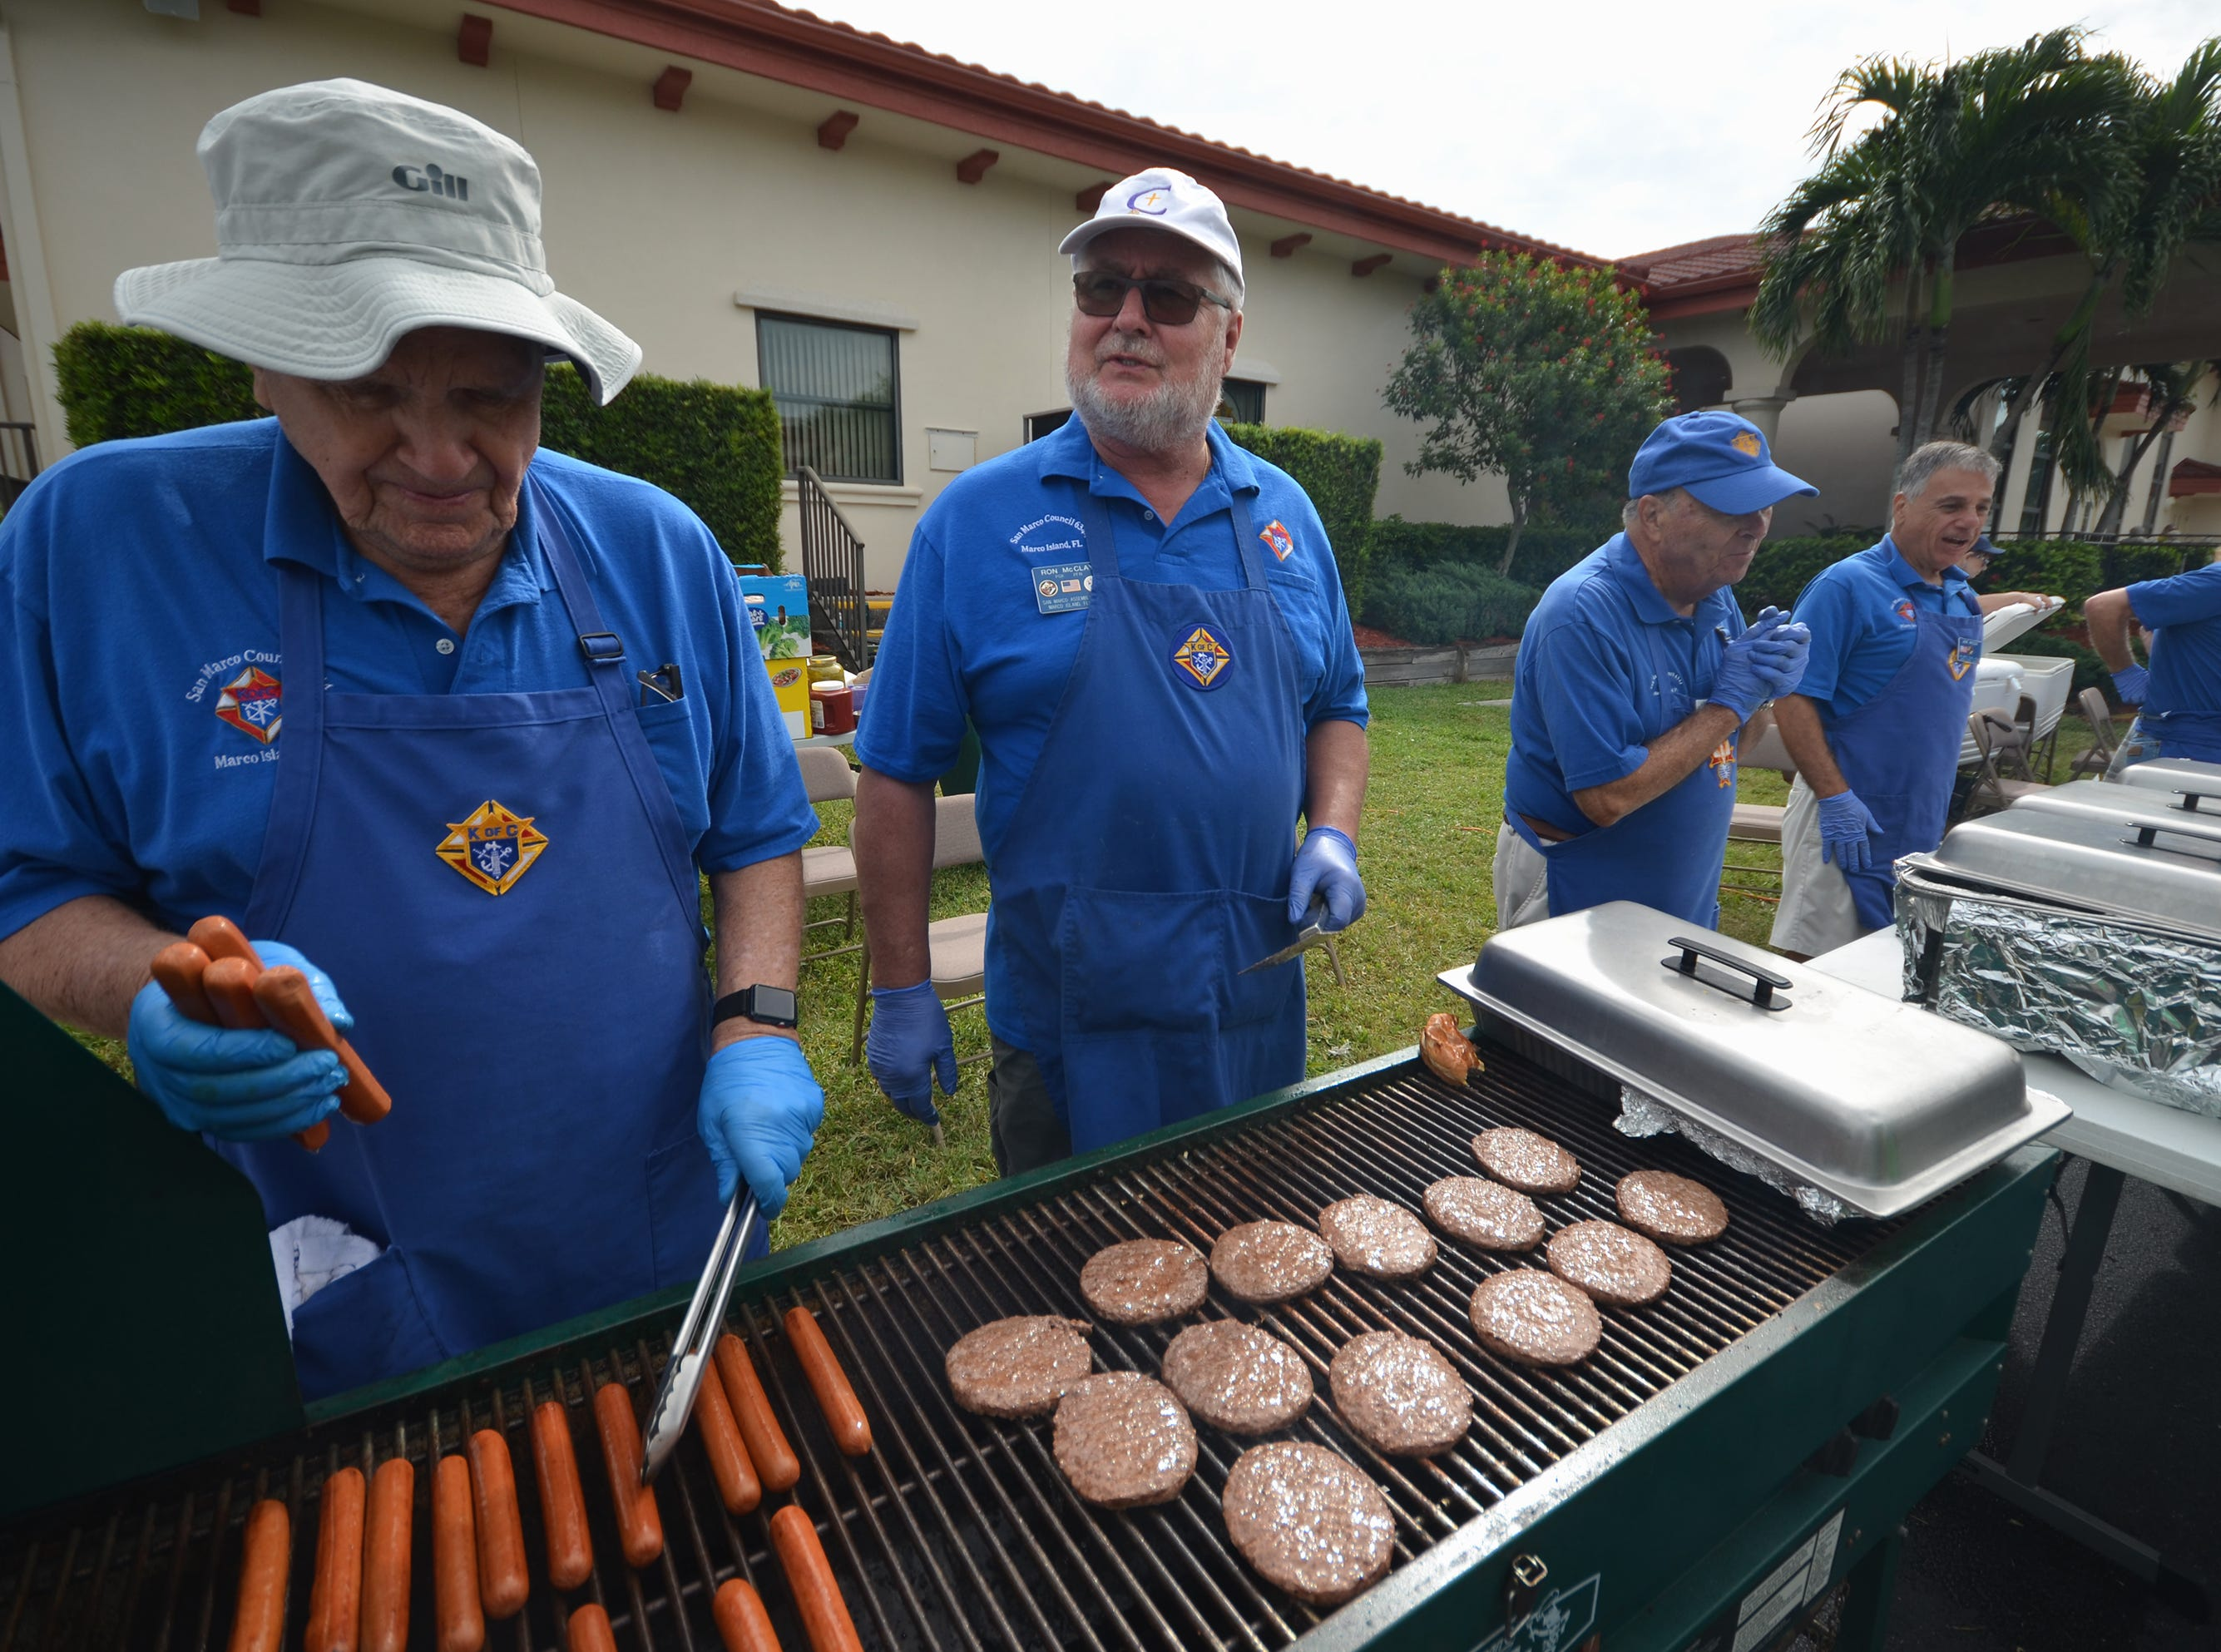 The Marco Island Knights of Columbus held their inaugural car show Saturday in the parking lot at San Marco Catholic Church.